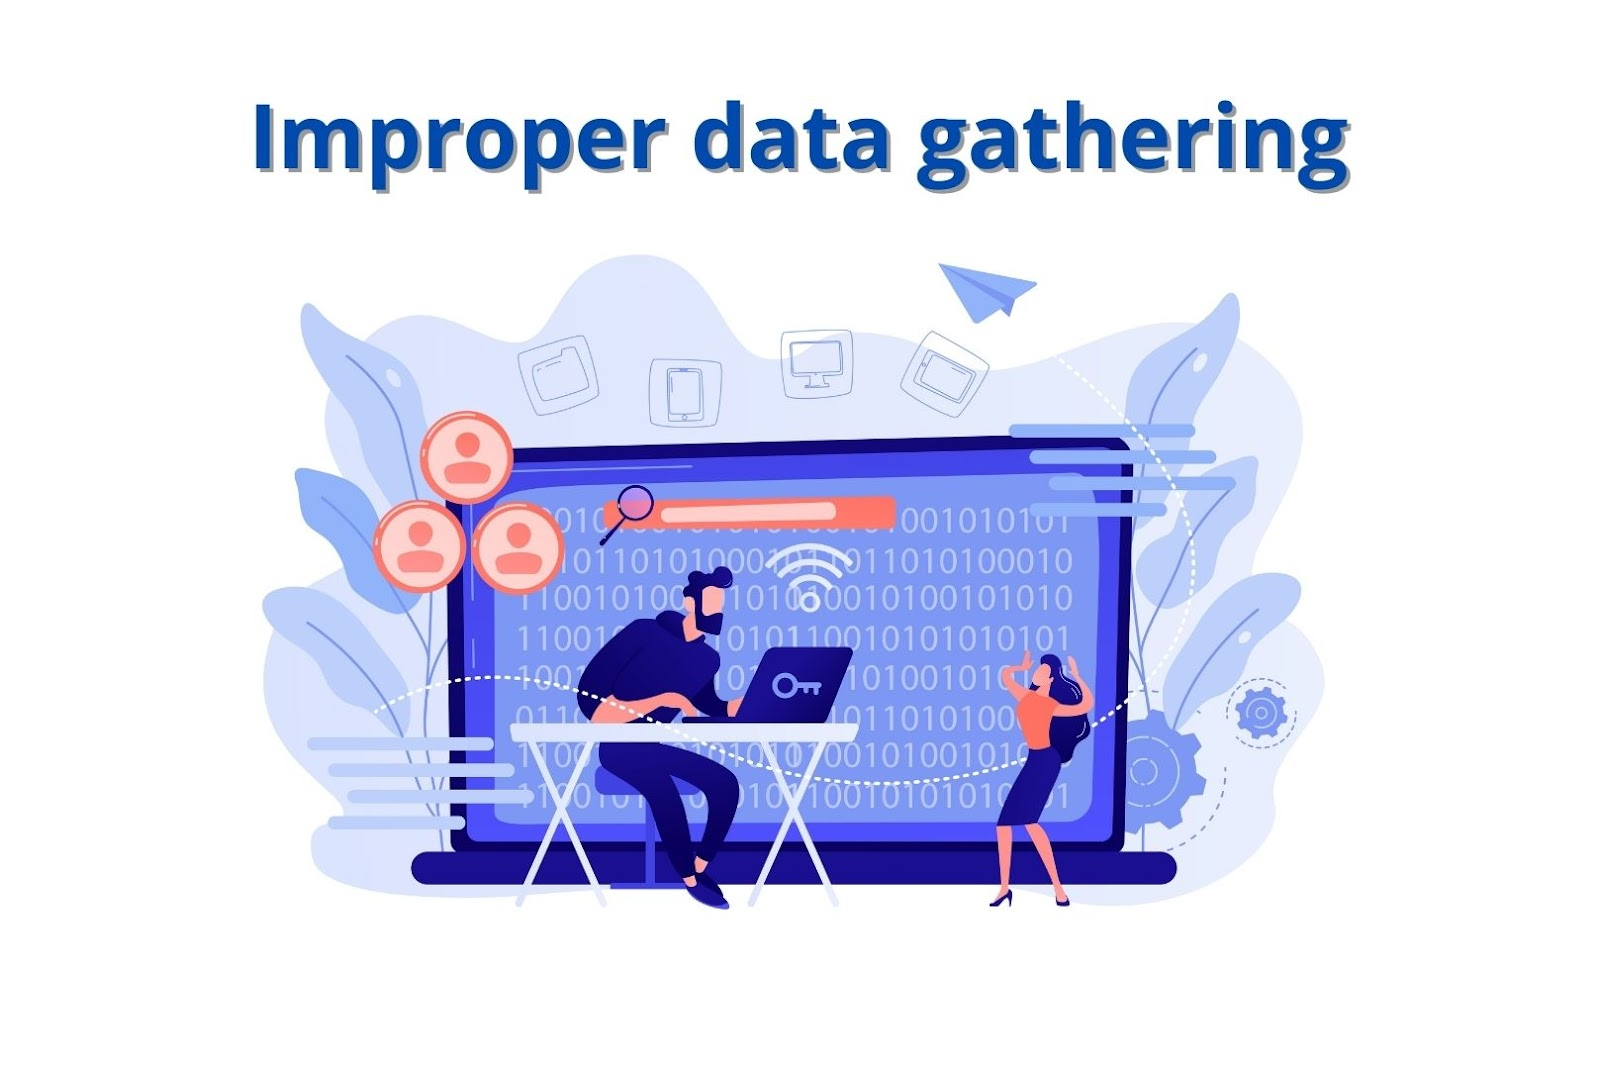 Improper data gathering